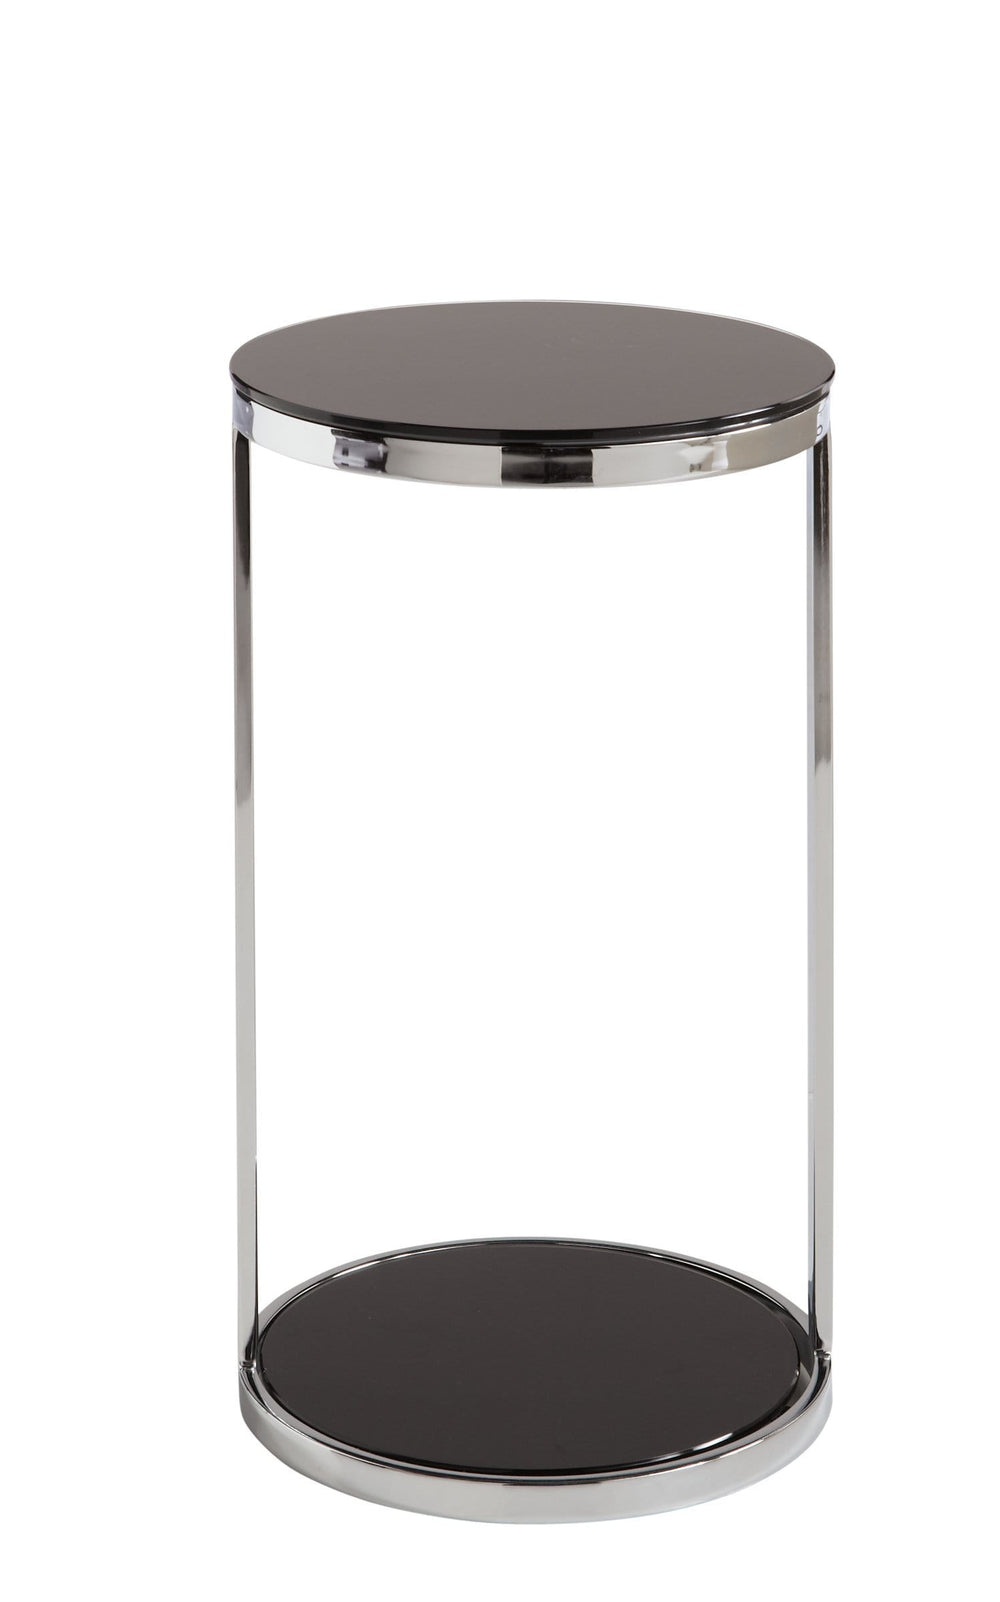 Benjamin End Table - Furniture - Accent Tables - High Fashion Home